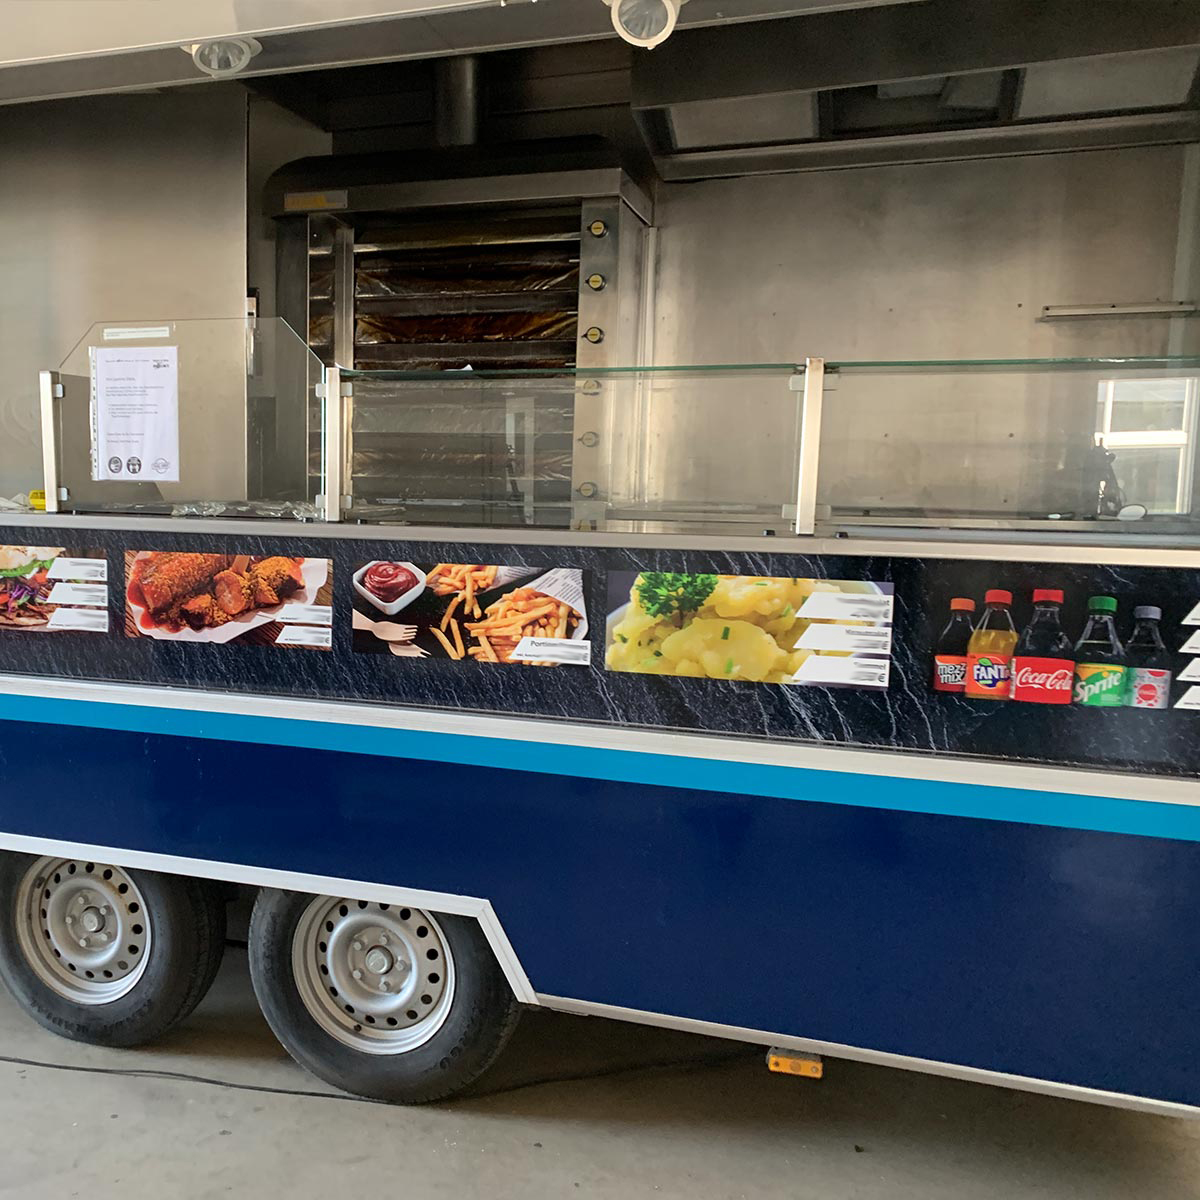 Foodtruck-007.jpg